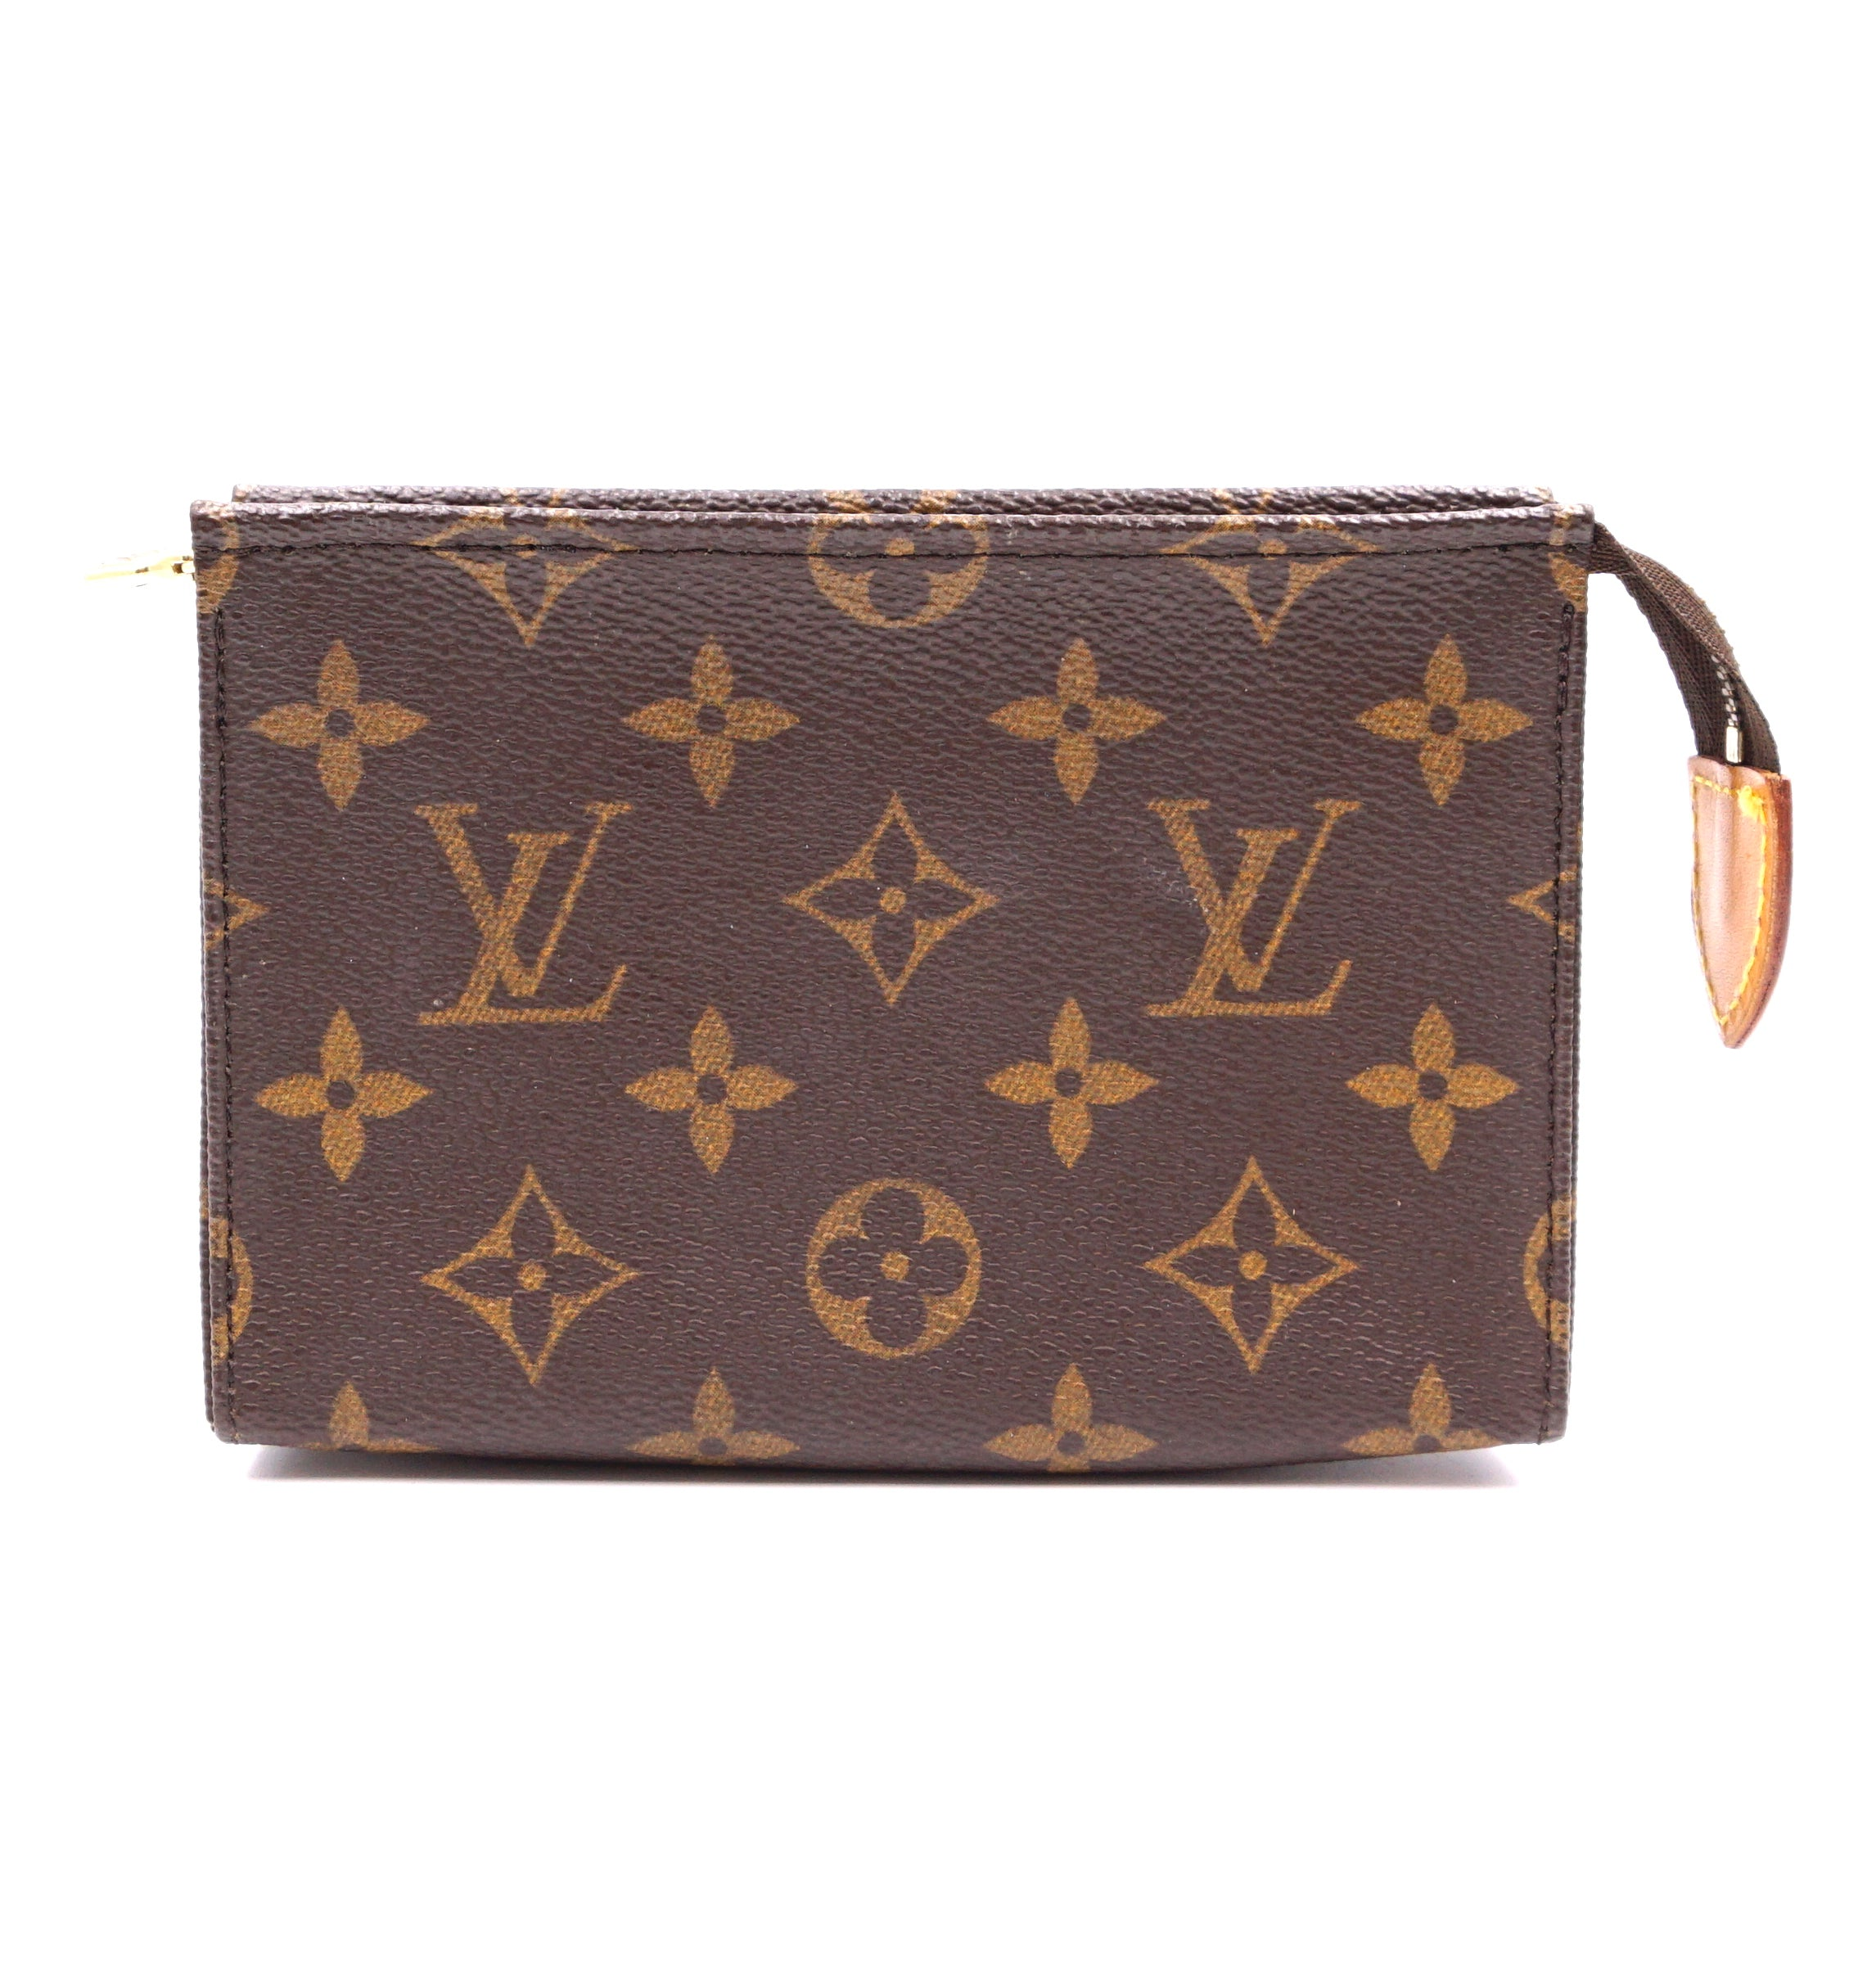 Louis Vuitton Flat Pochette 15 Monogram Canvas